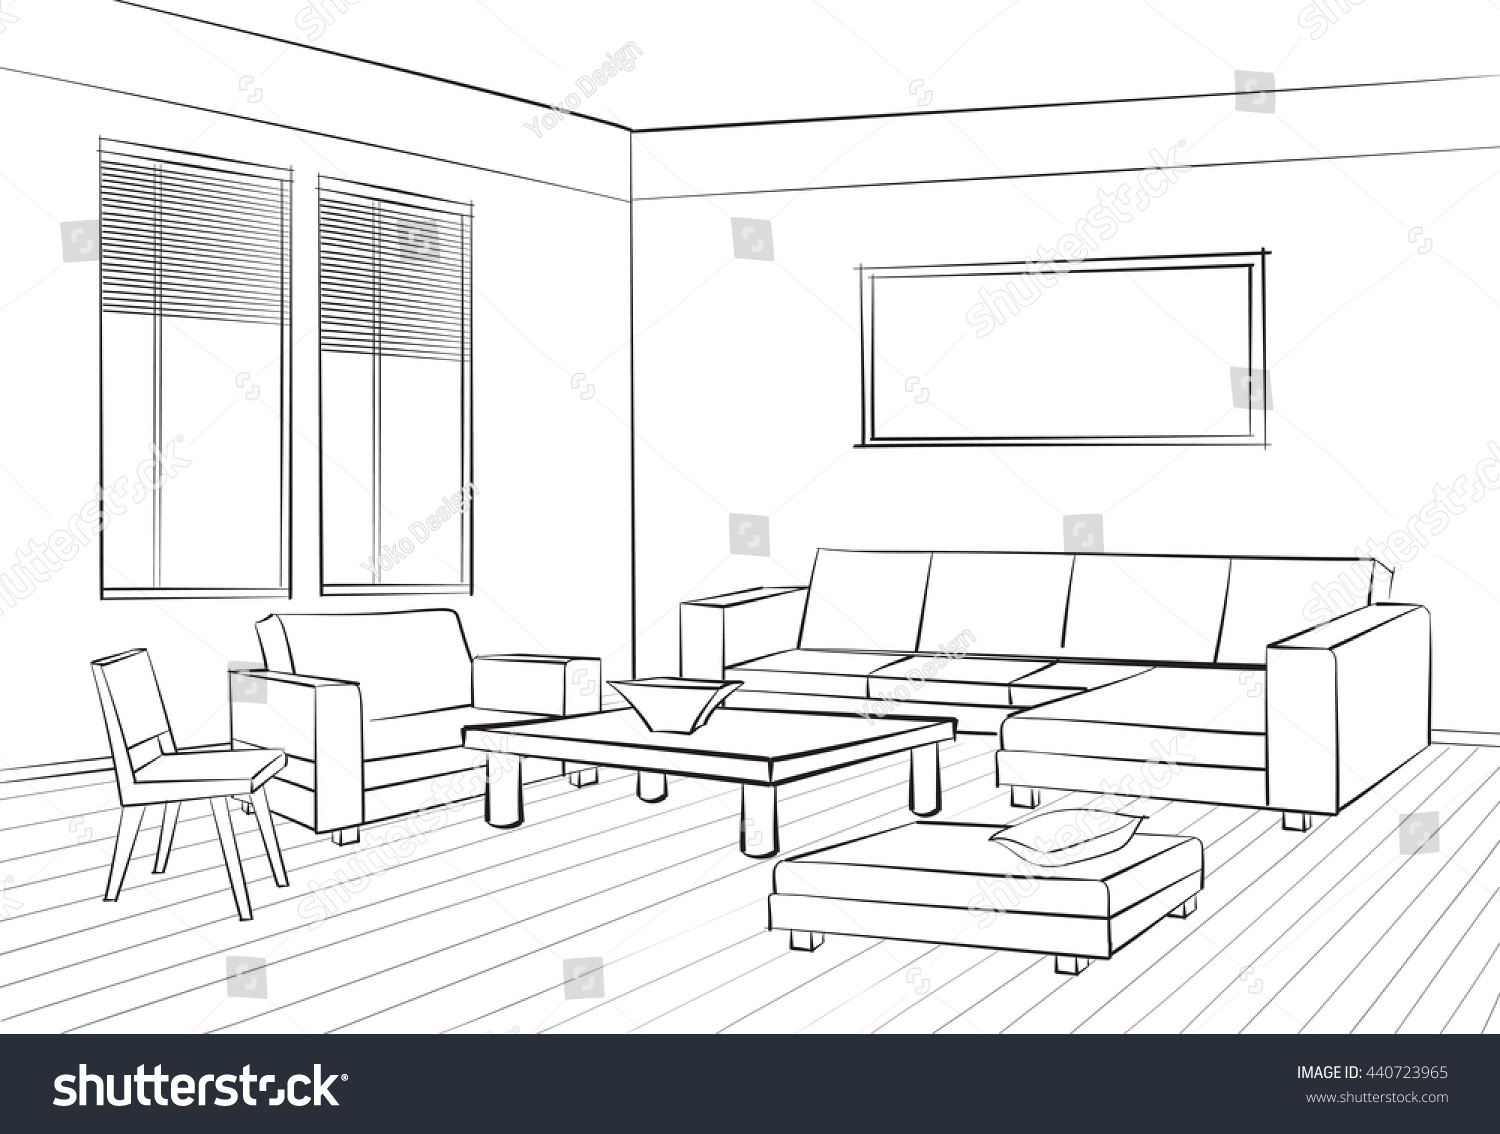 Home interior furniture sofa armchair table stock vector for Drawing room interior